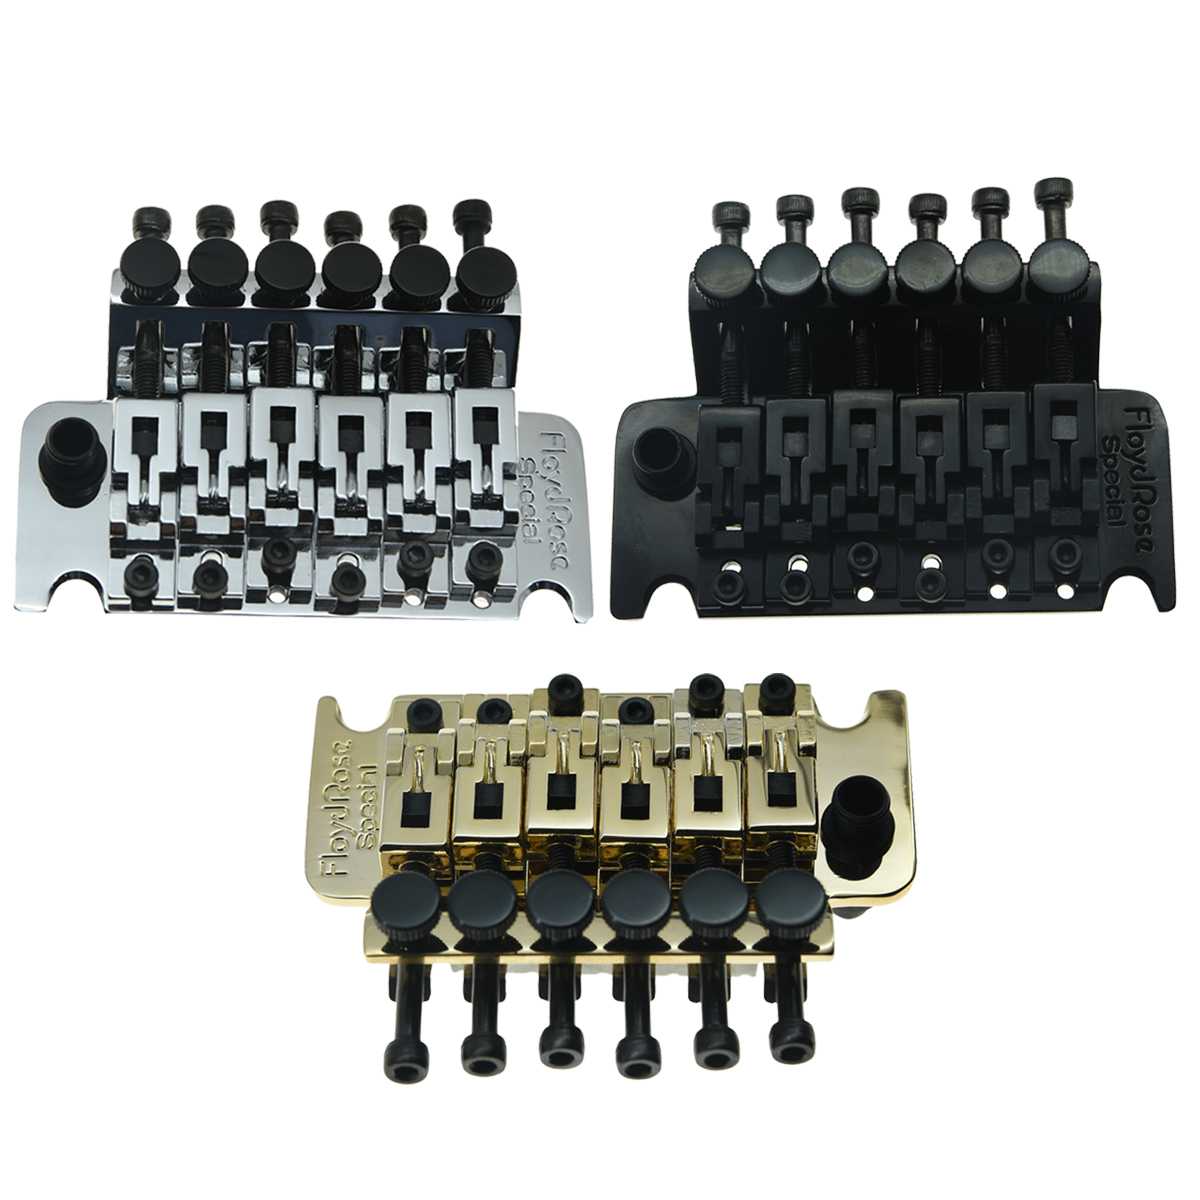 KAISH Genuine Floyd Rose Special Guitar Locking Tremolo Bridge System with R2 or R3 Nut Chrome/Black/Gold niko chrome floyd rose lic tremolo bridge double locking system free shipping wholesales